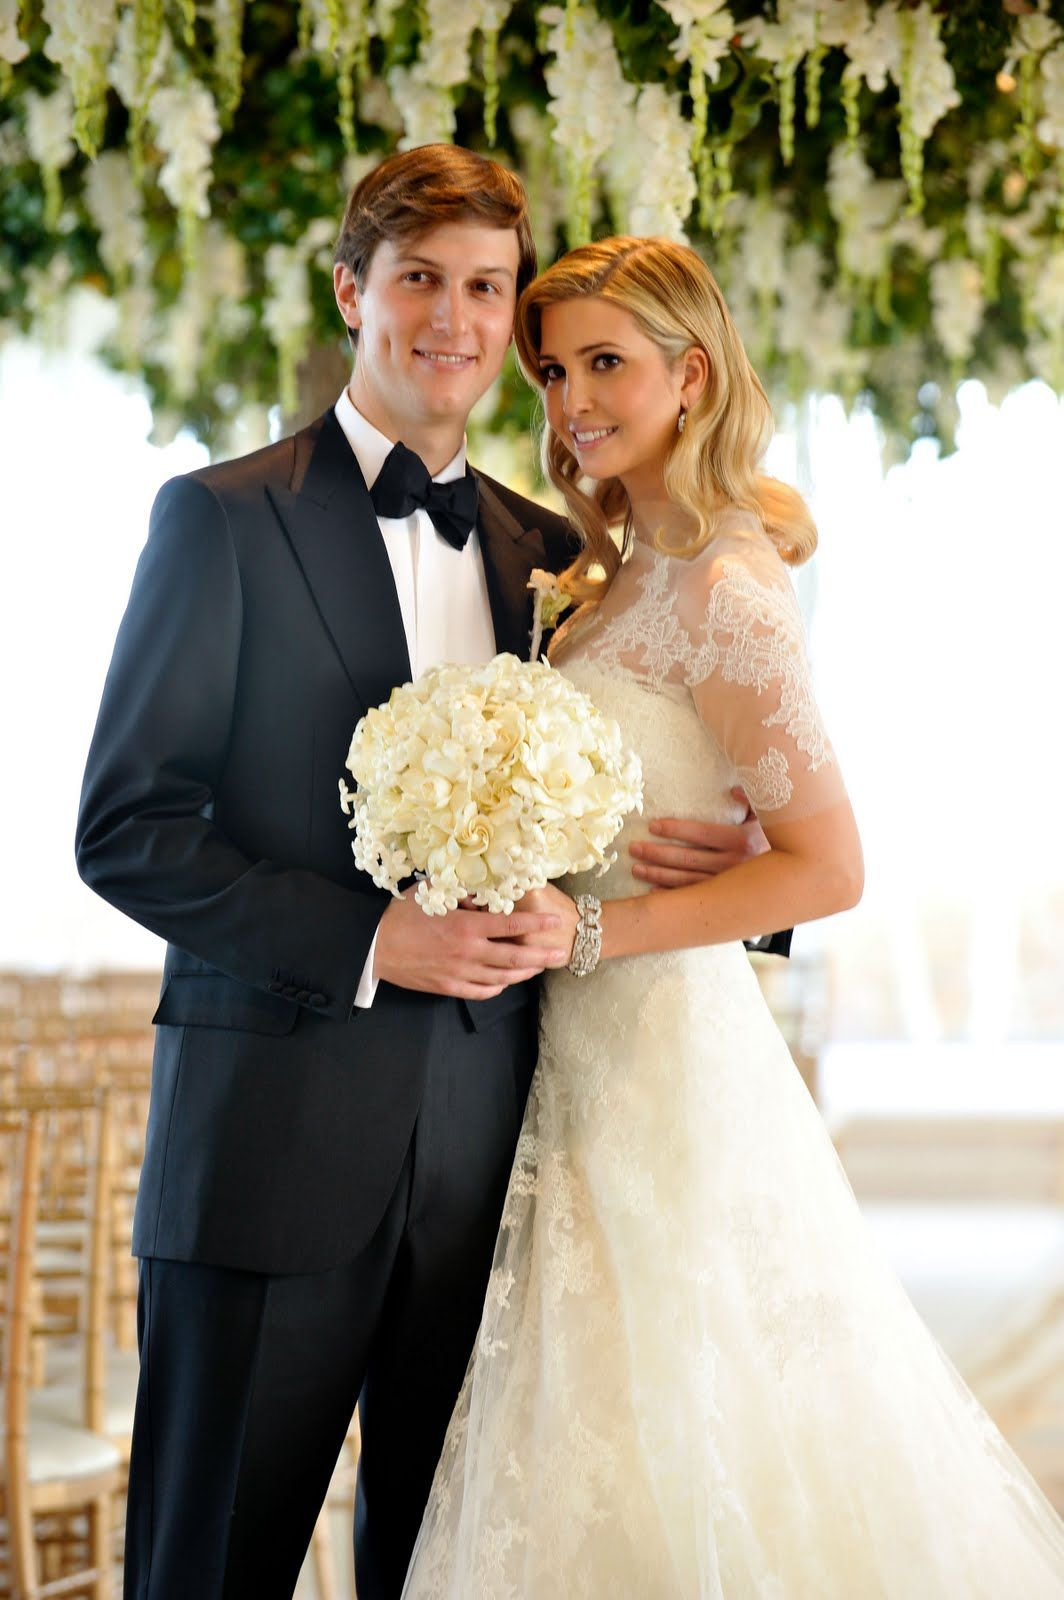 Ivanka Trump and Jared Kushner's wedding | wedding ideas ...